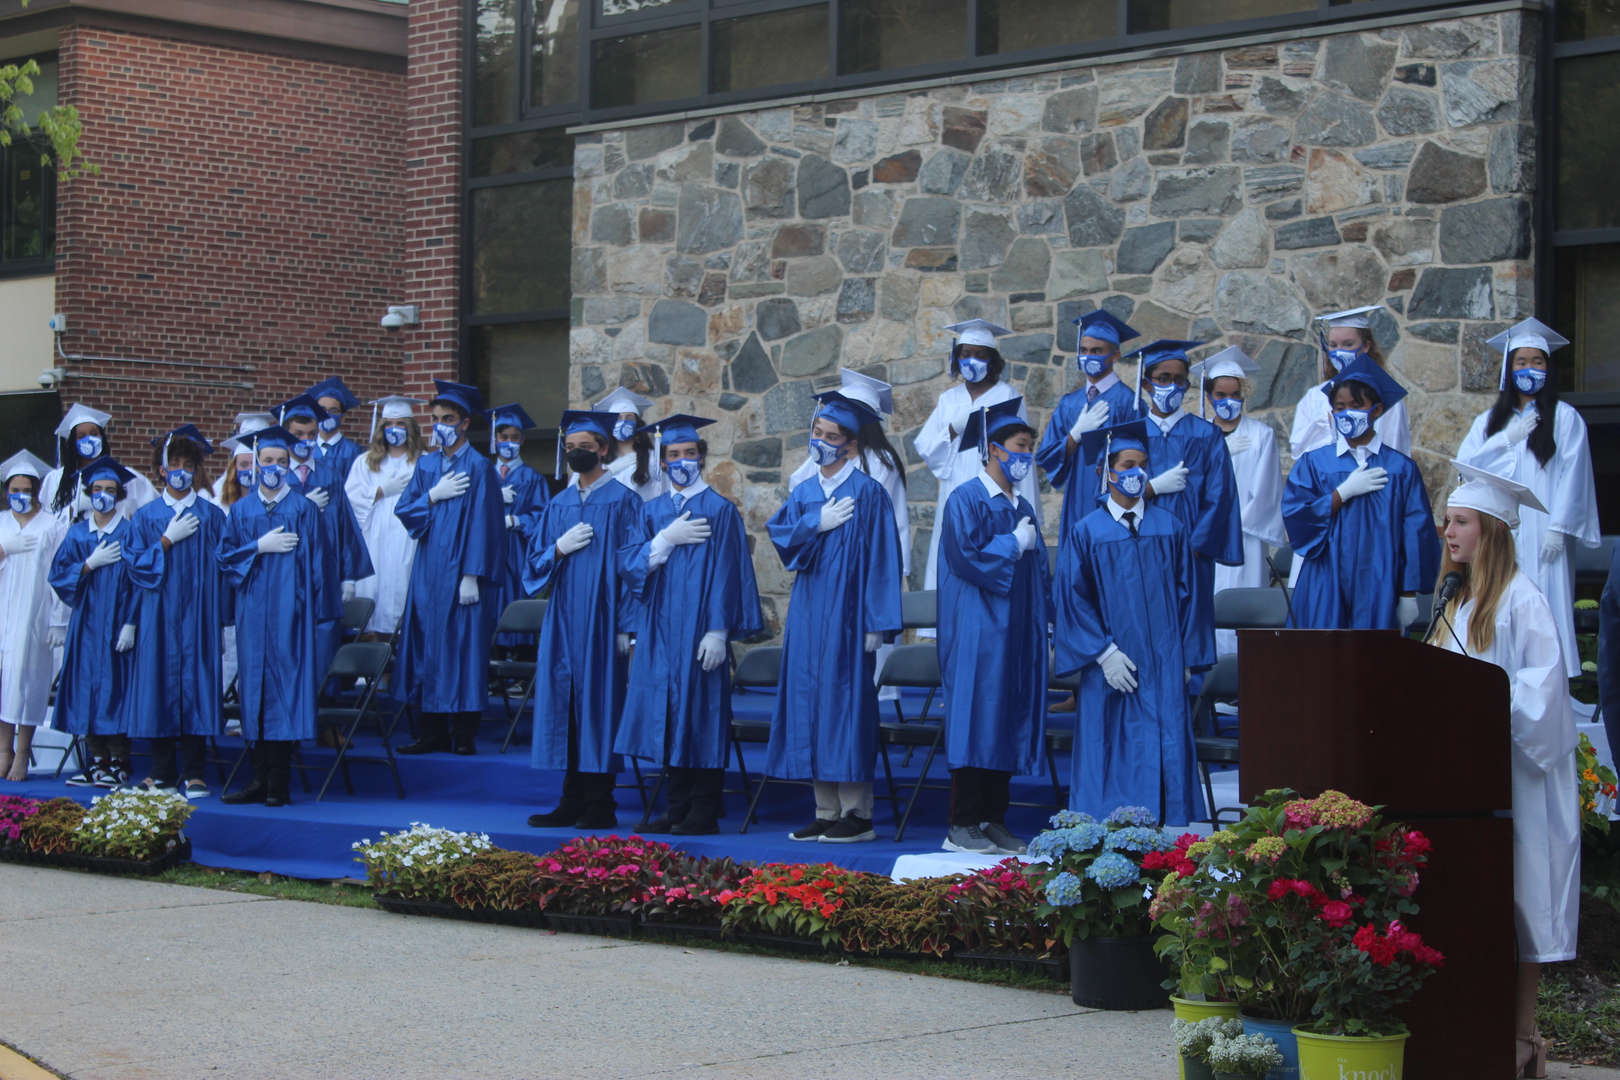 Class of 2021 graduates on stage at graduation.